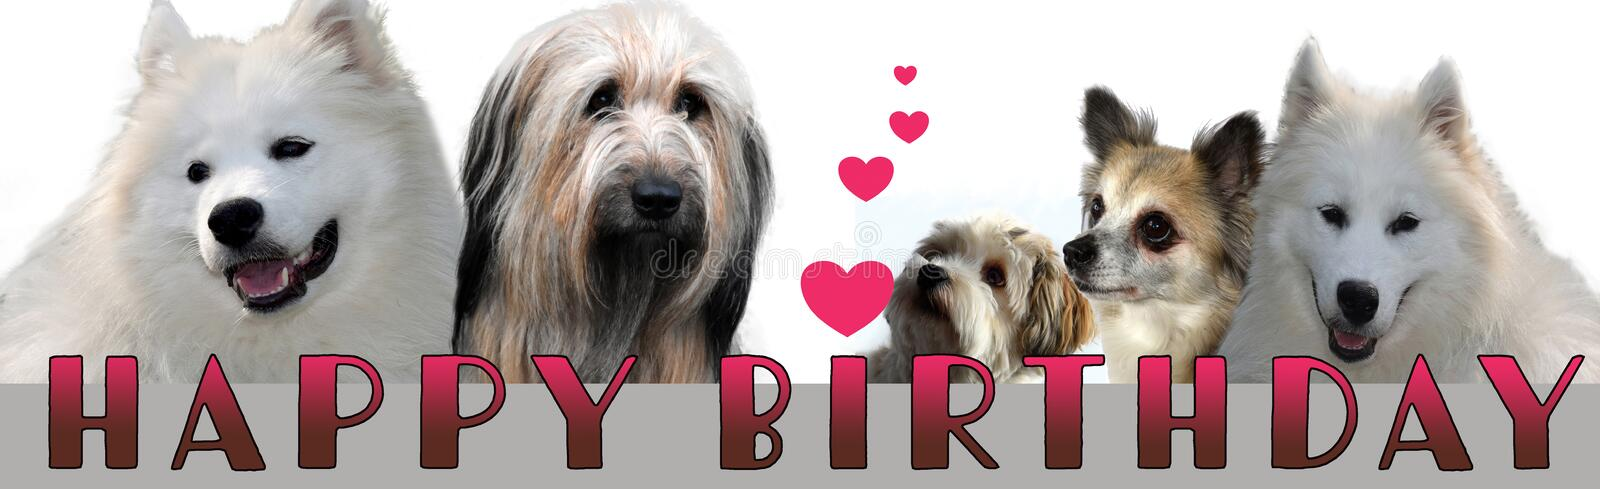 Happy birthday lettering with dogs. Banner design for a congratulation  card with  cute  thoroughbred dogs and the words happy birthday royalty free stock image